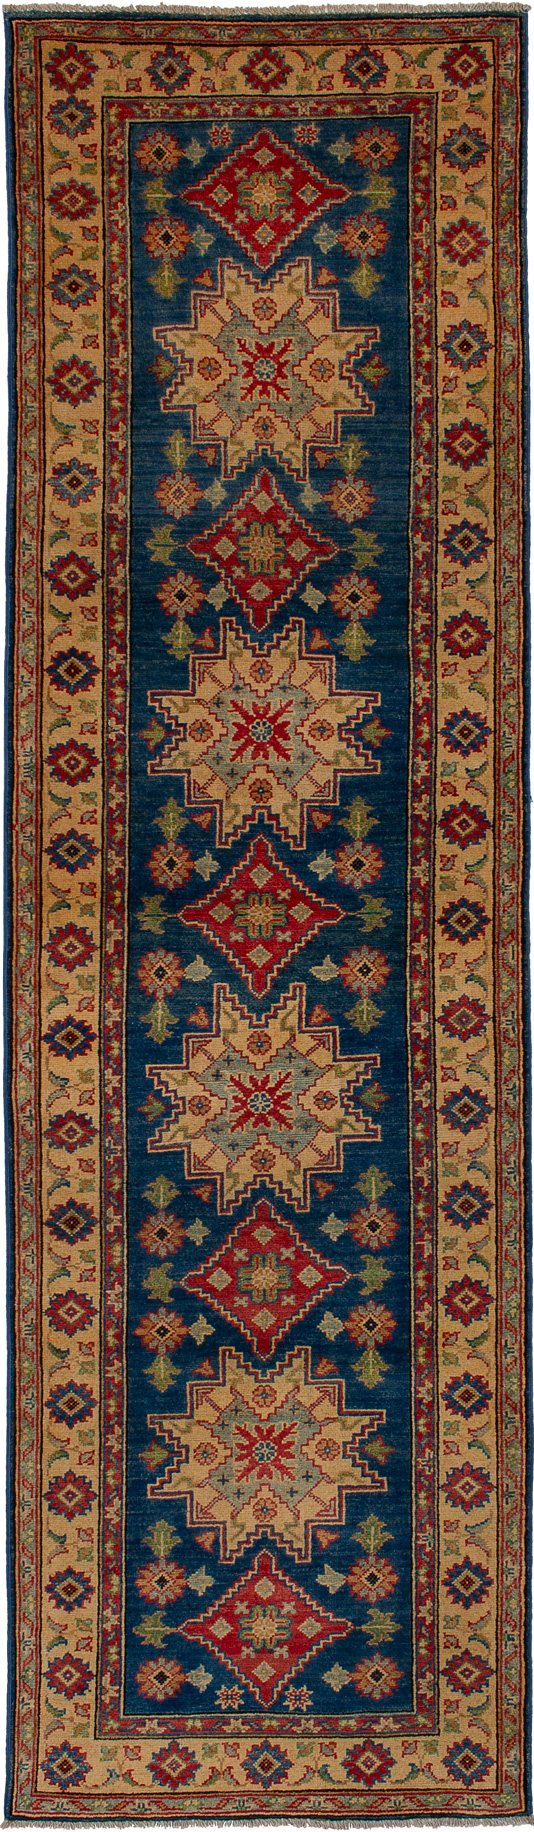 """Hand-knotted Finest Gazni Navy Blue Wool Rug 2'7"""" x 9'7"""" Size: 2'7"""" x 9'7"""""""